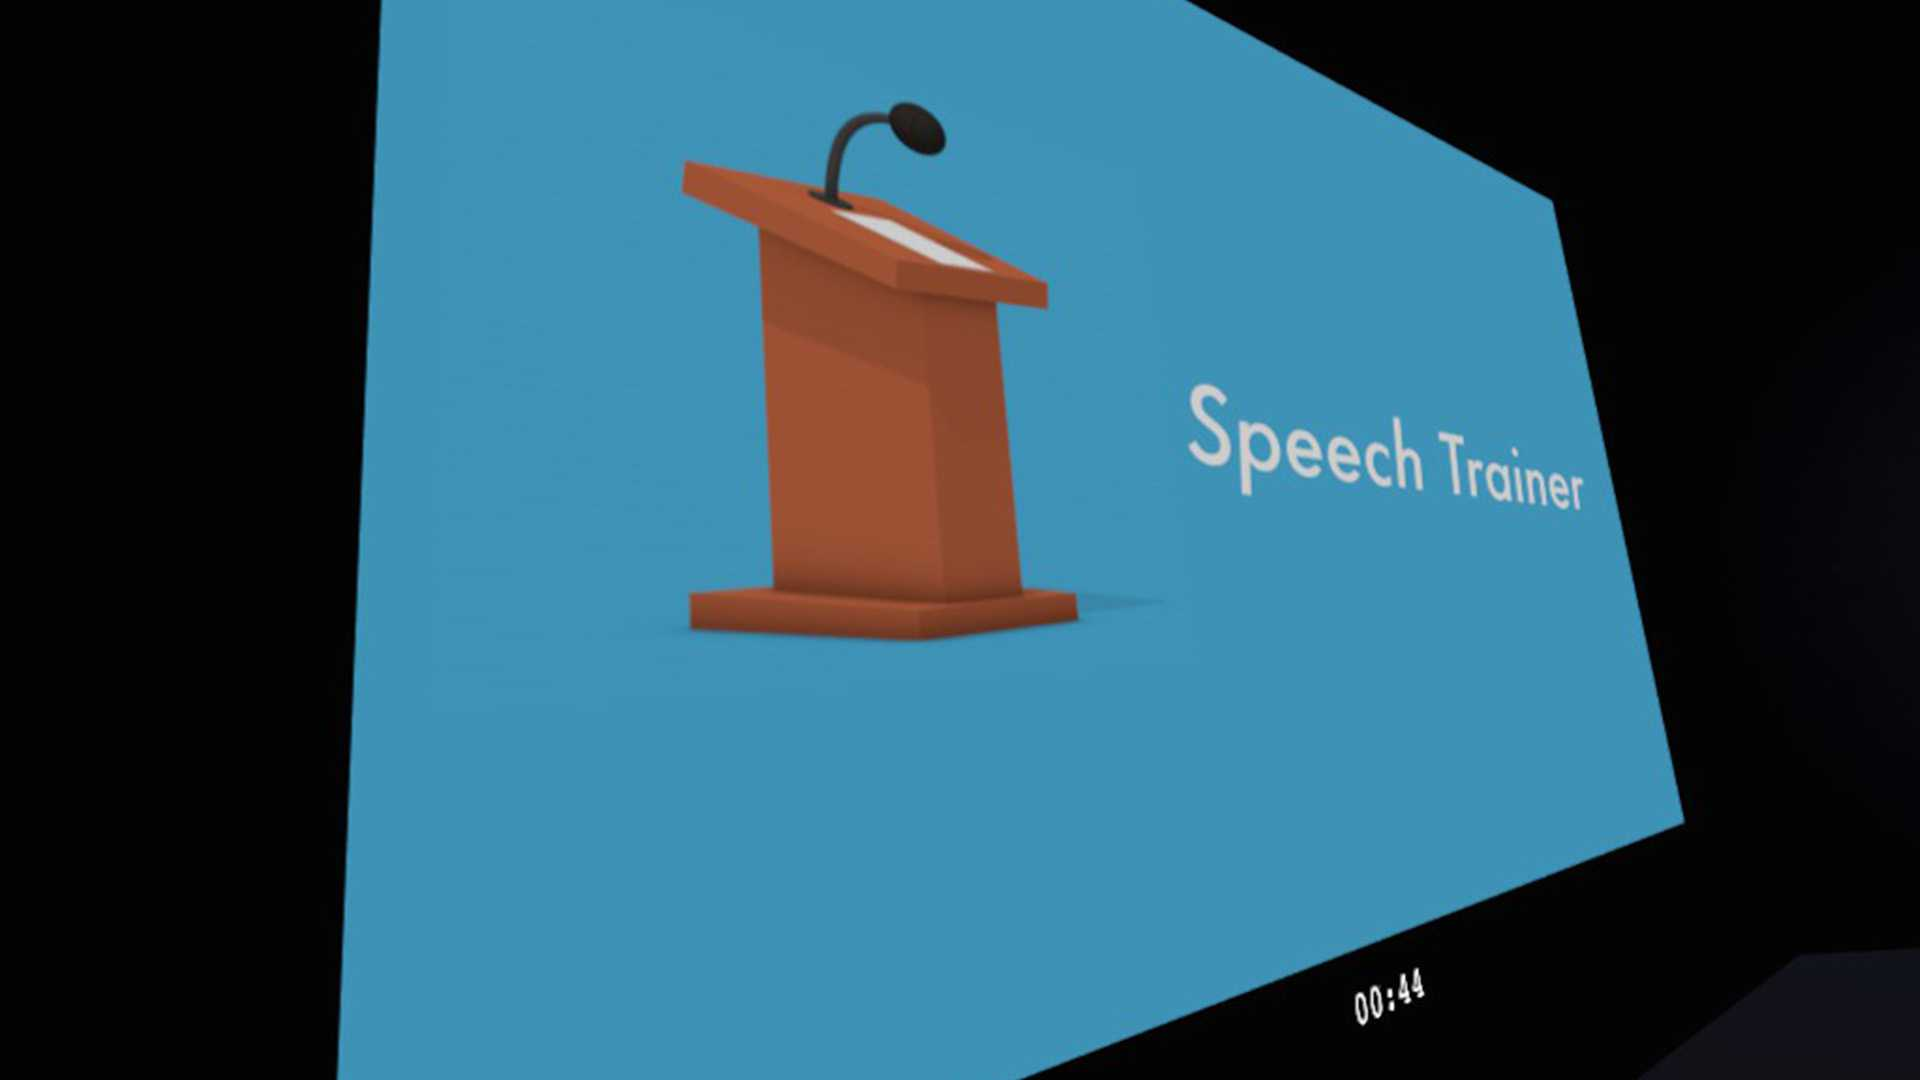 Speech Trainer